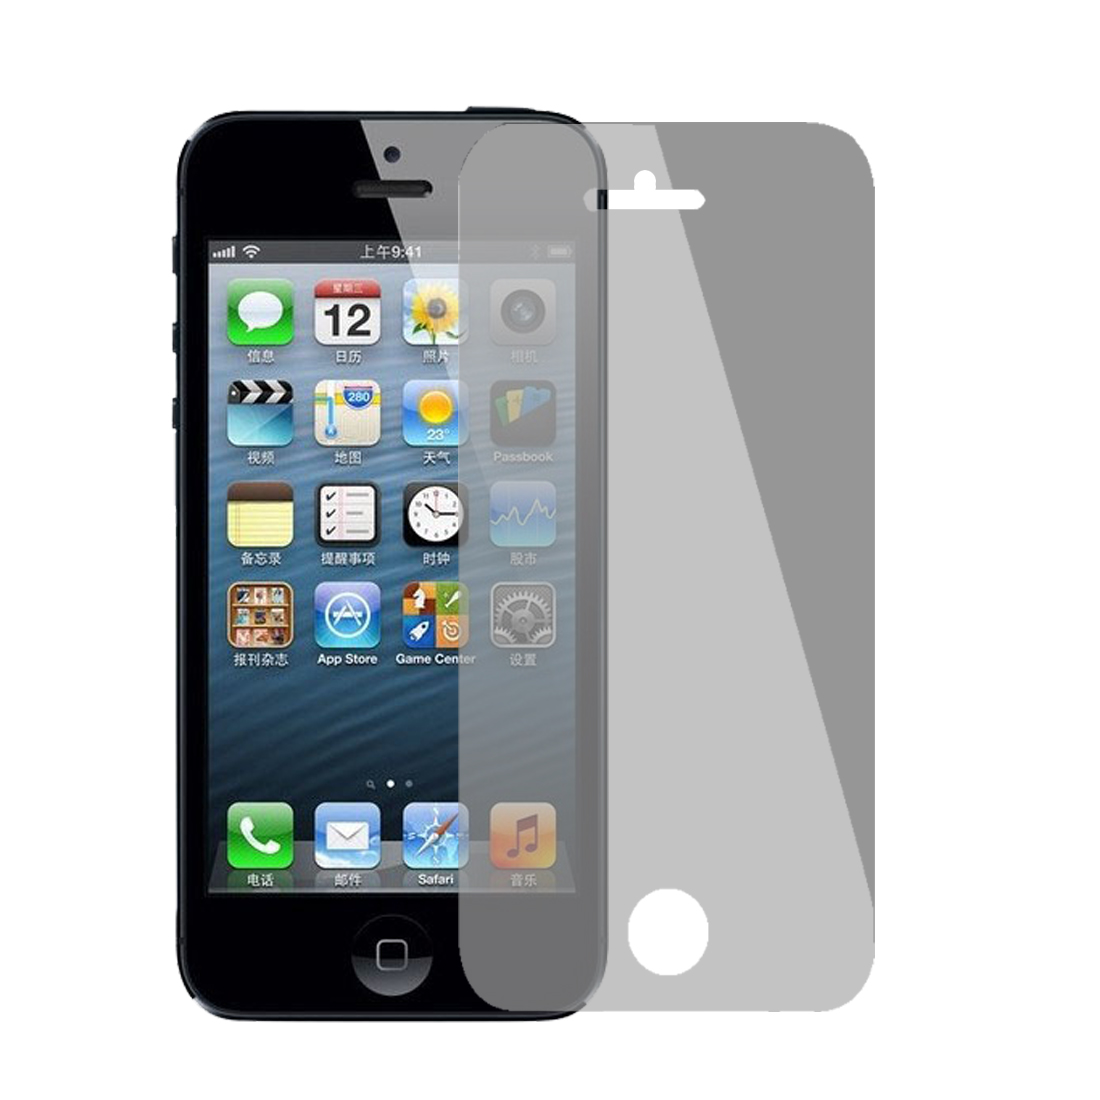 Crowded Area Privacy LCD Screen Protector Film Guard for iPhone 5S 5C 5 5GS 5G